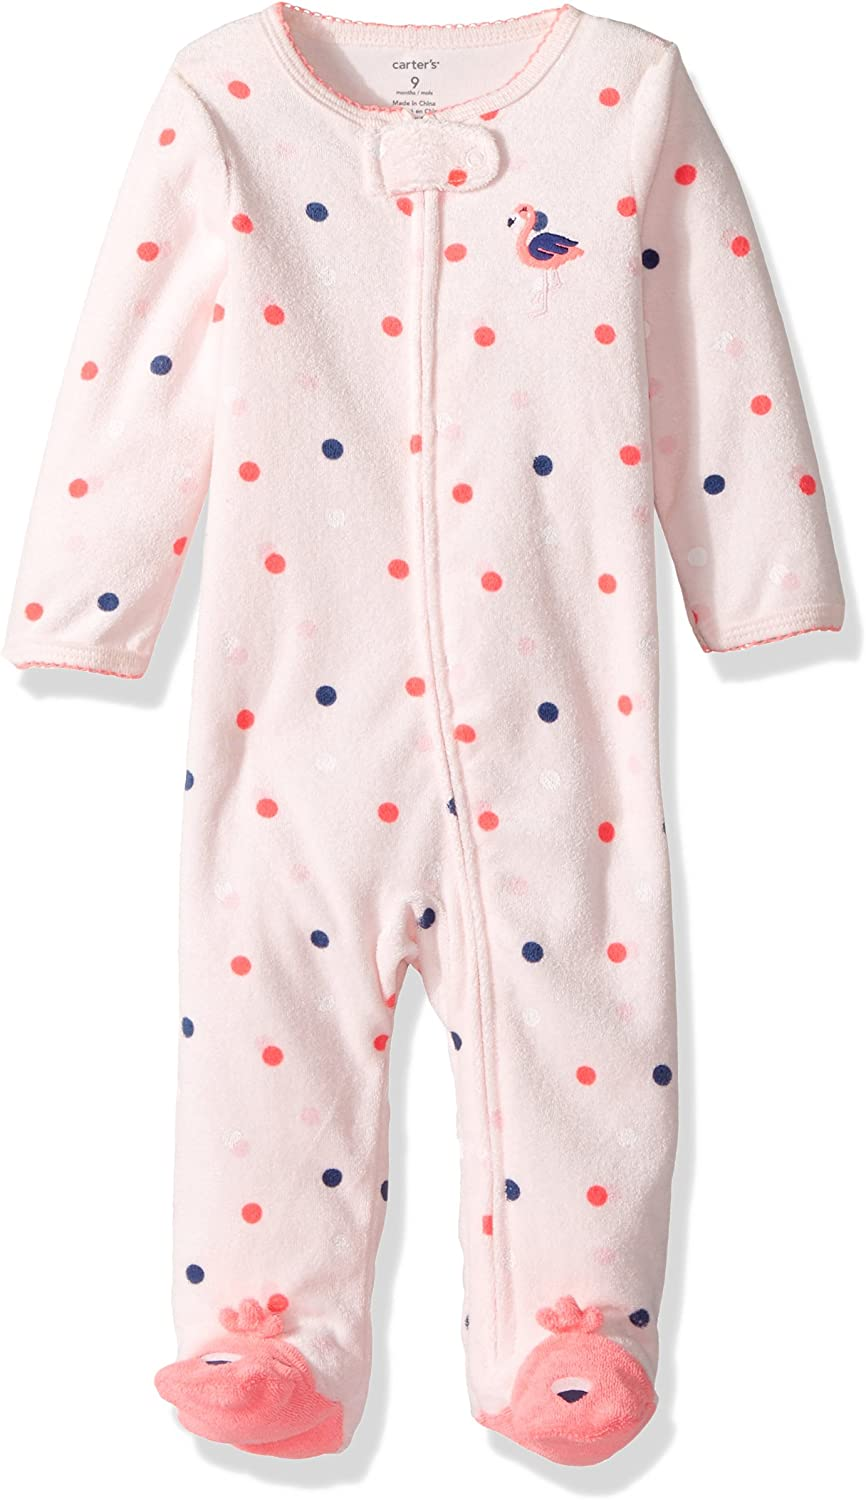 Carters Baby Girls Terry 115g175